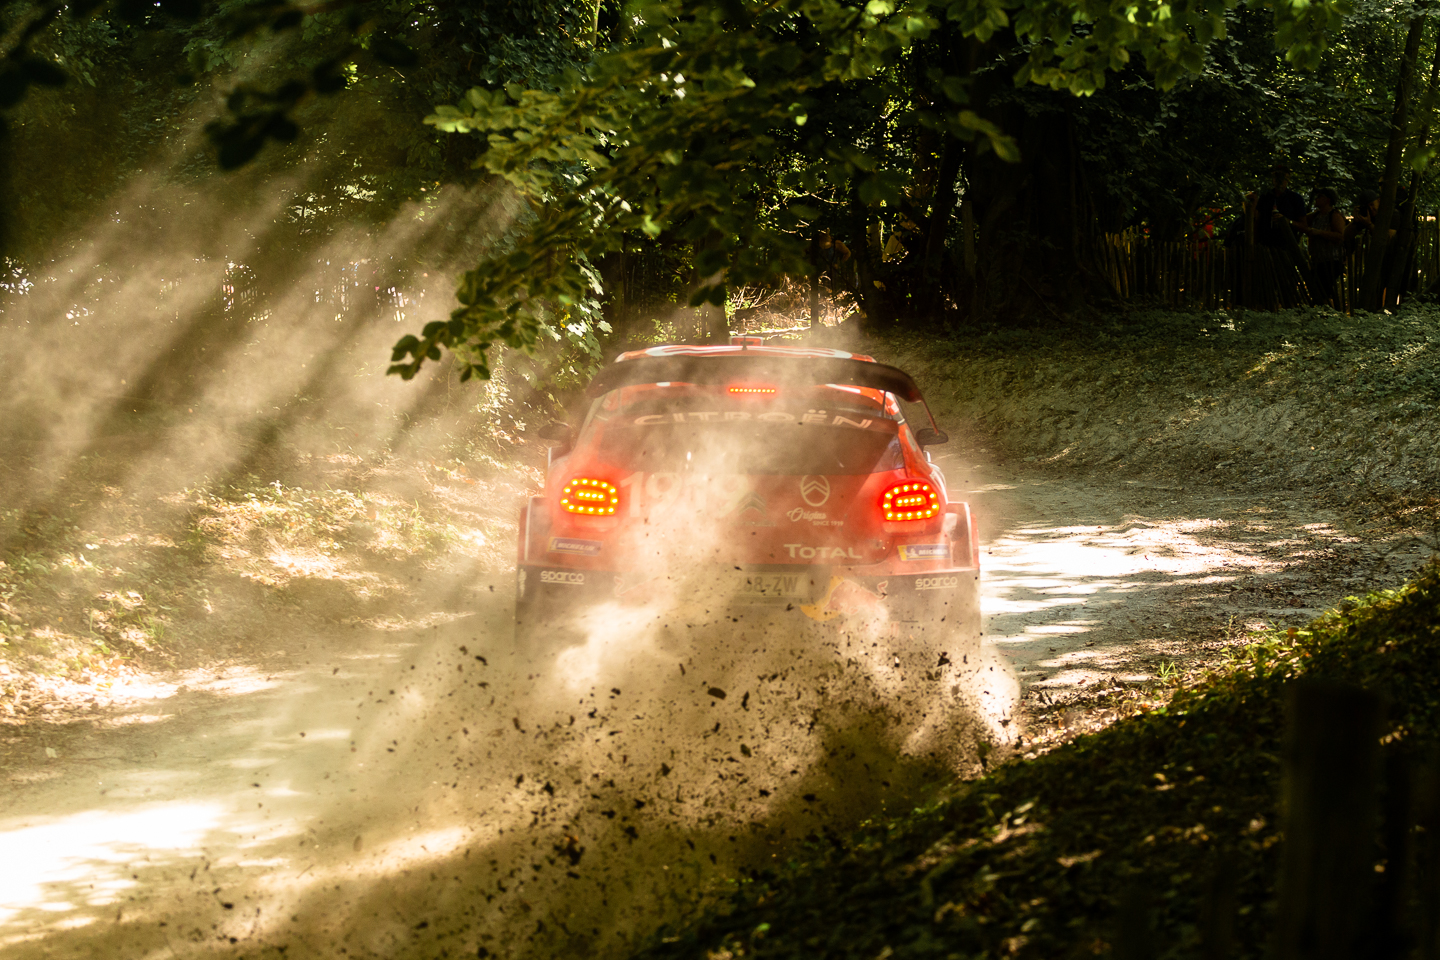 Citroen rally car in the woods